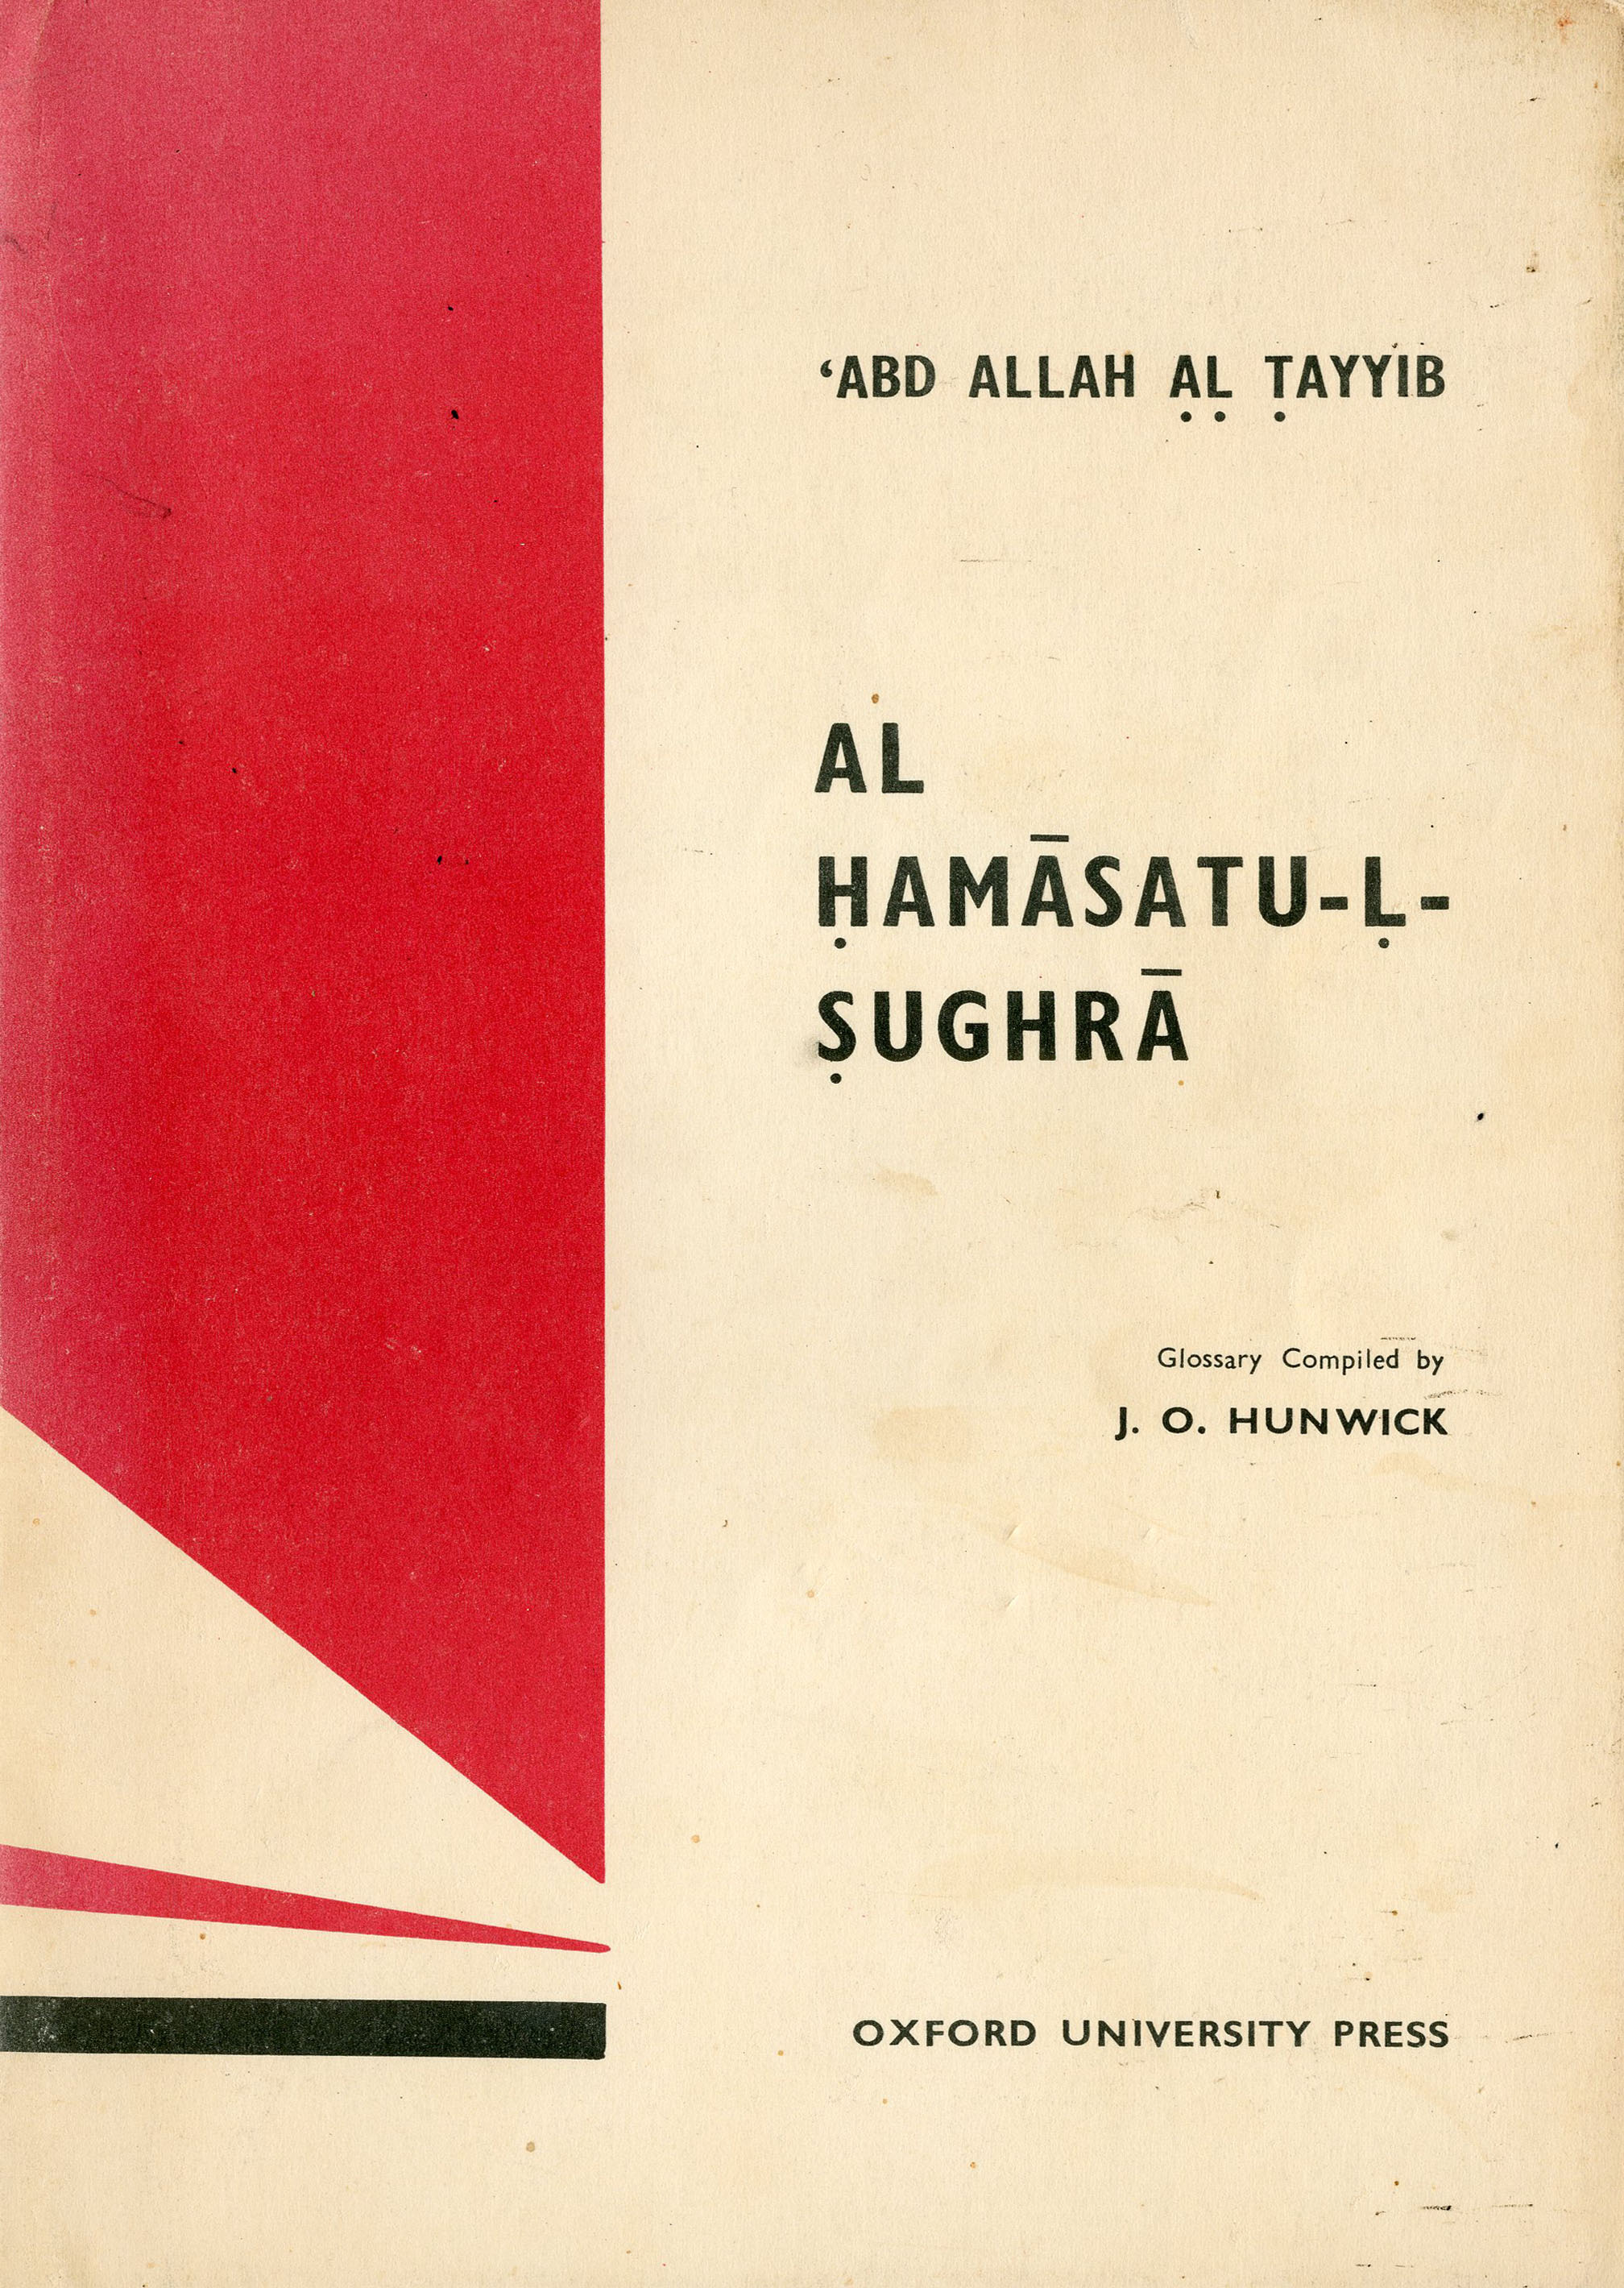 T?ayyib, ?Abd Alla?h, al-H?ama?sah al-sughra? , PJ7641 .T37 1964, Special Collections Research Center.